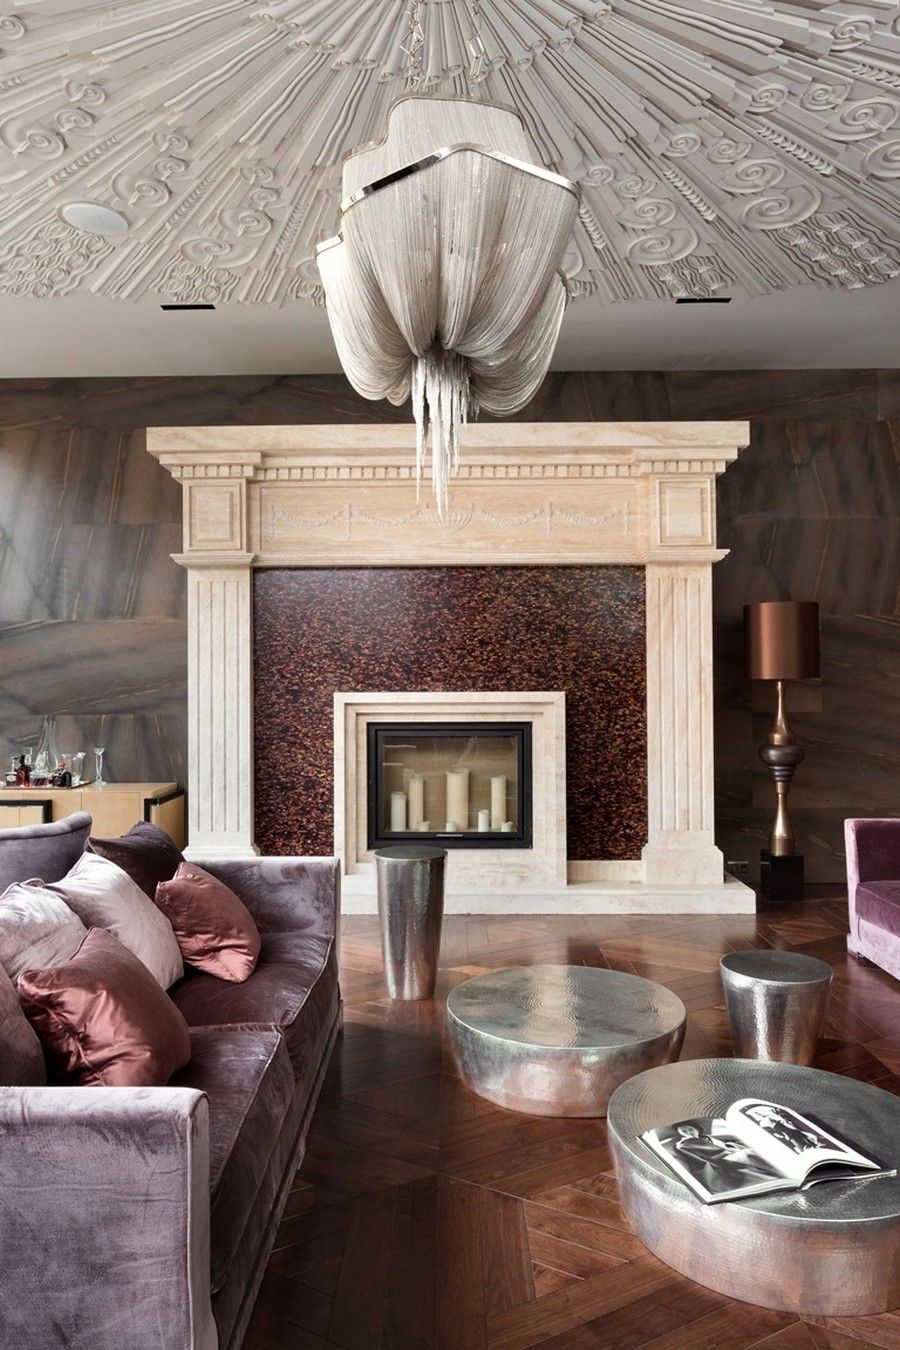 Kiev's Belle Epoque Residence: The Extravagant Home Décor : Brown Golden Living Room Metalic Coffe Table Detailed Arch Candle Holder Luxurious Home